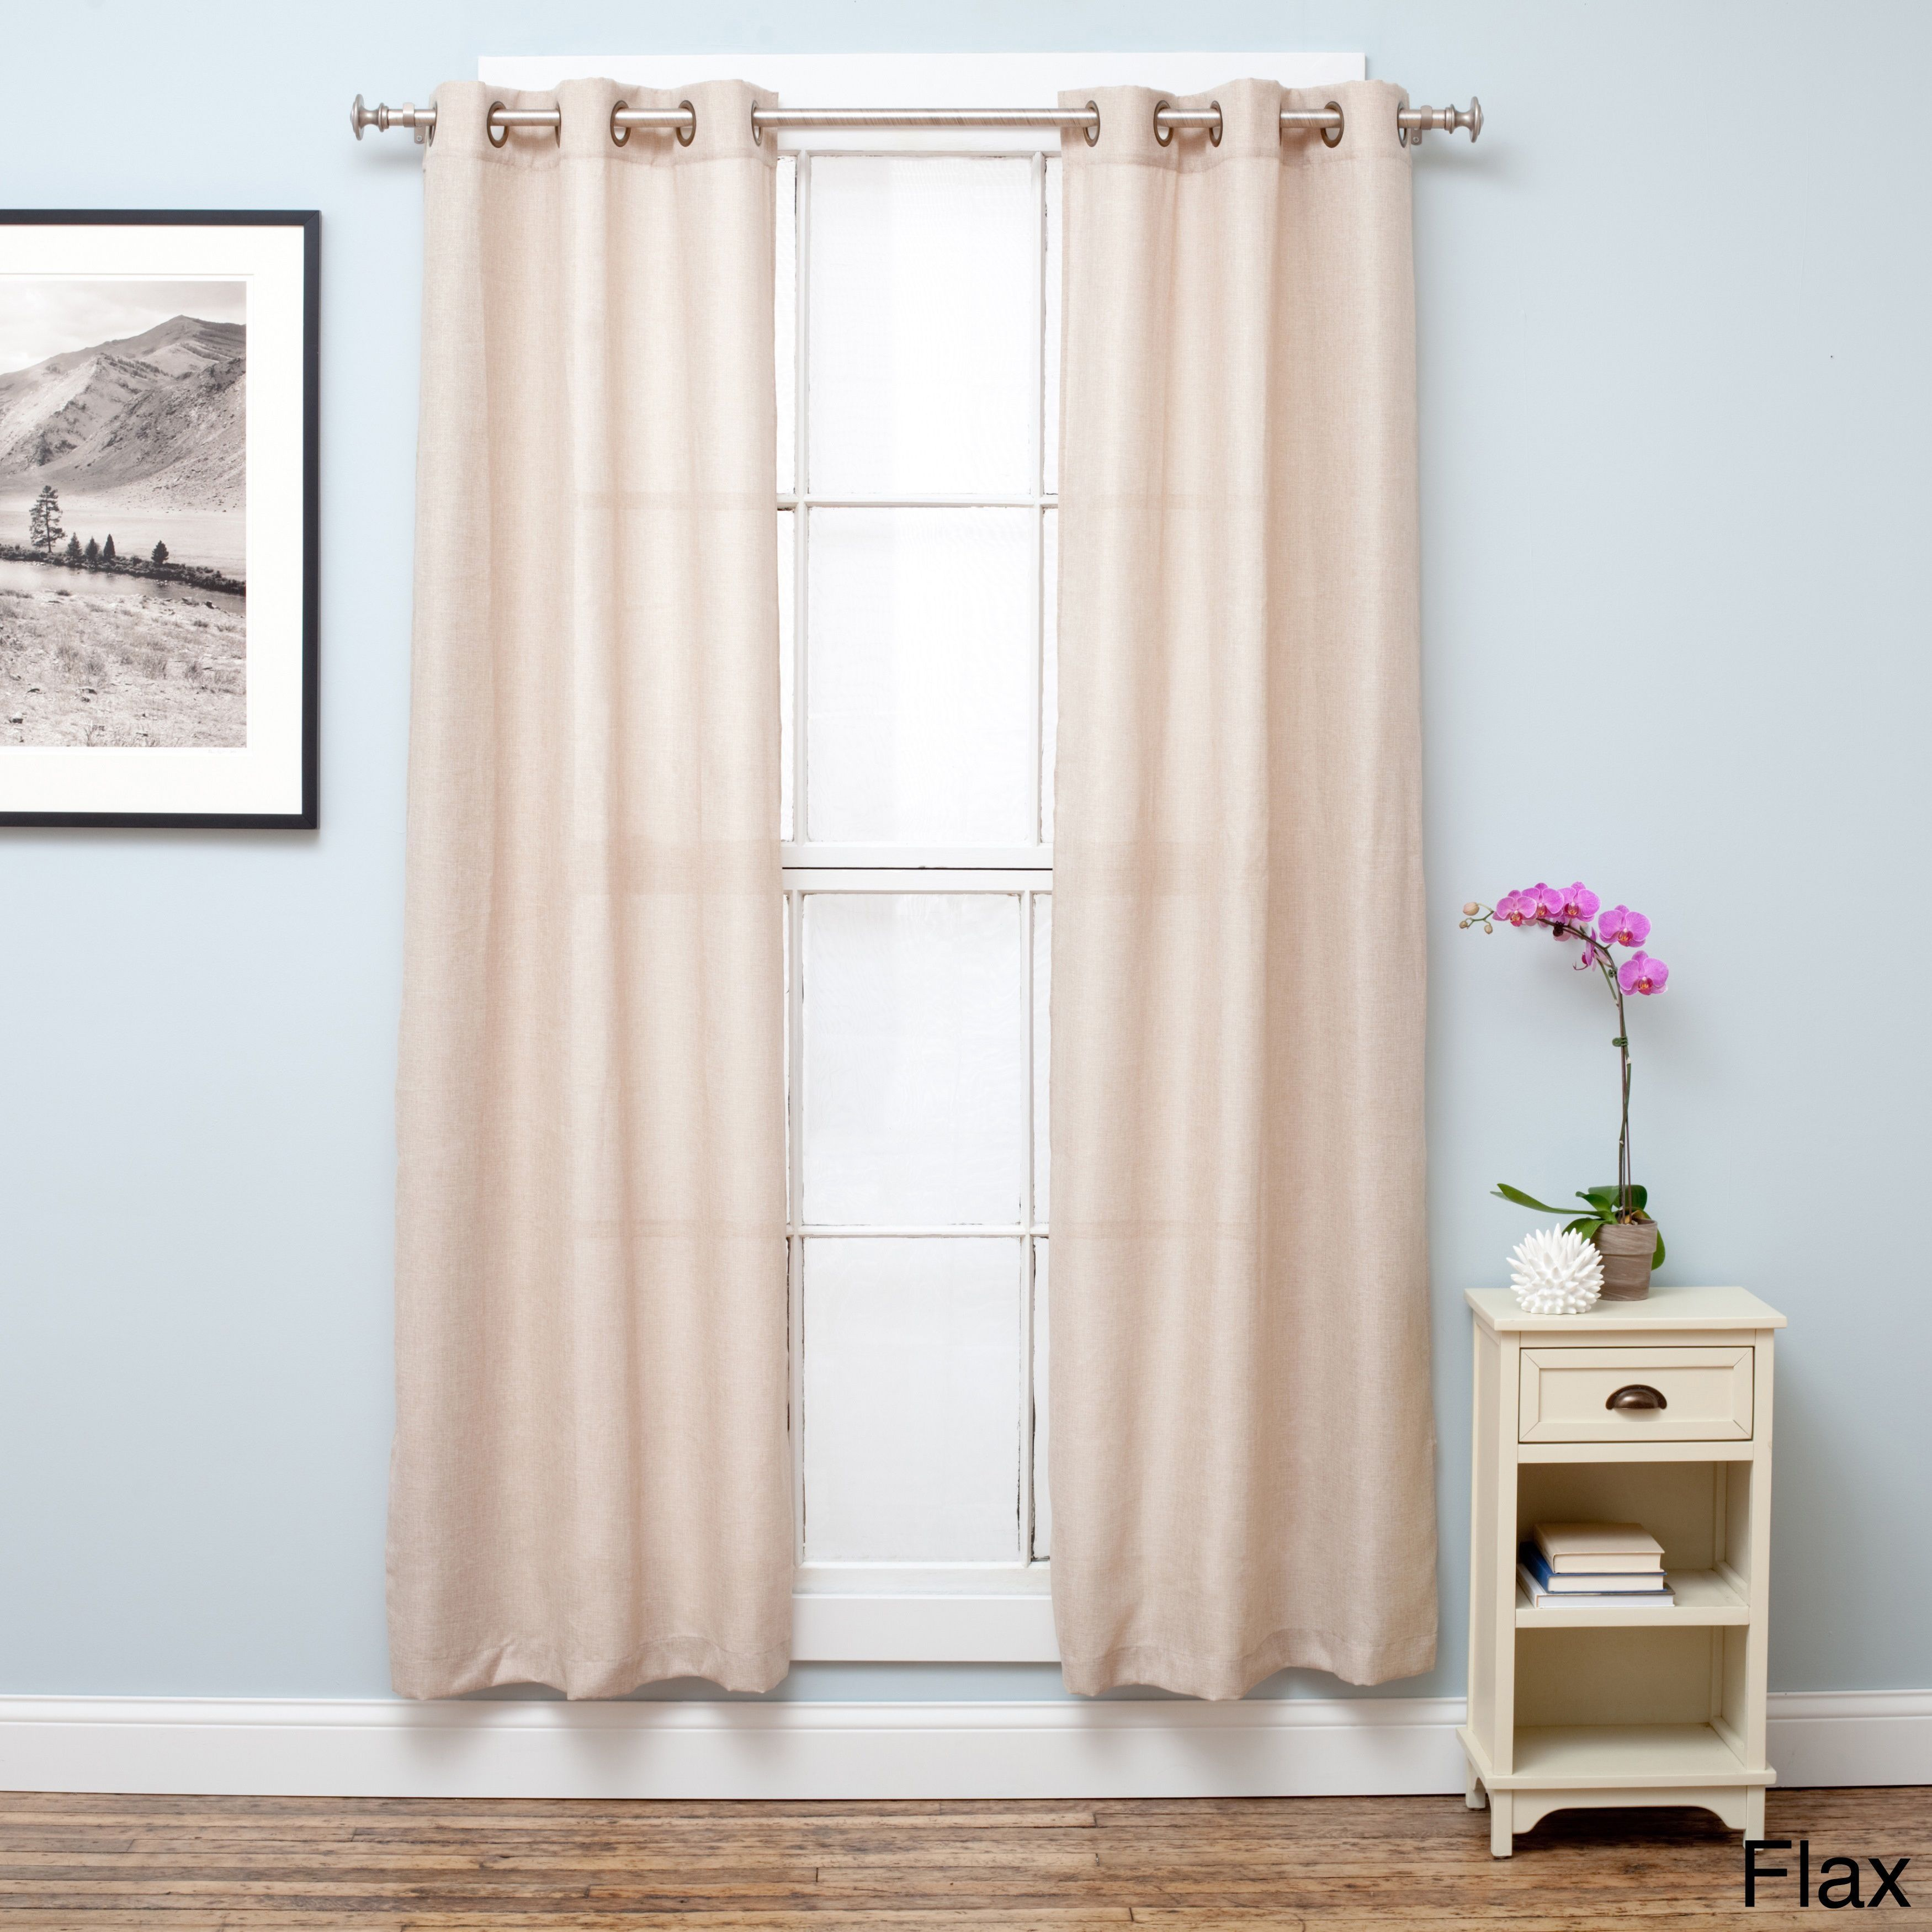 sari on top ring handmade overstock india garden product sheer free curtain panel chambray curtains shipping orders over gold x home